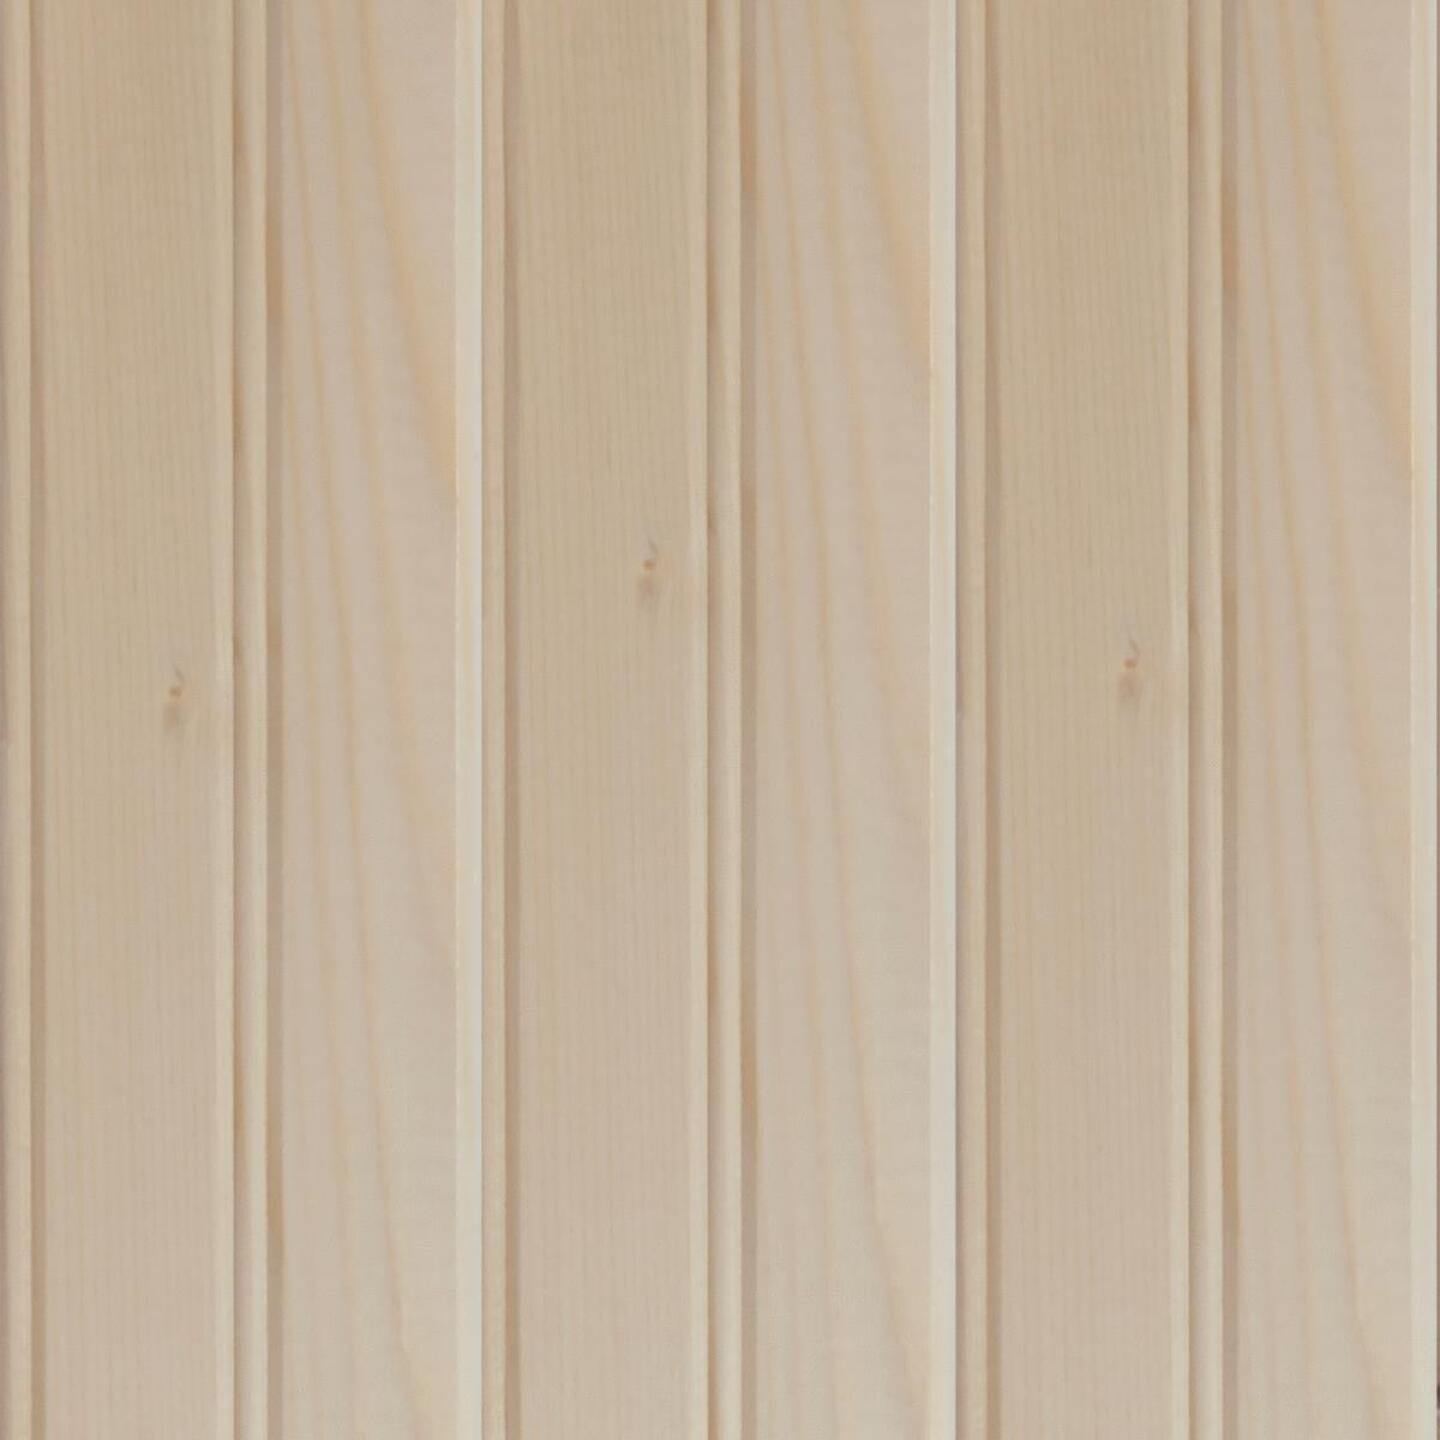 Global Product Sourcing 3-1/2 In. W. x 8 Ft. L. x 1/4 In. Thick Knotty Pine Reversible Profile Wall Plank (6-Pack) Image 1